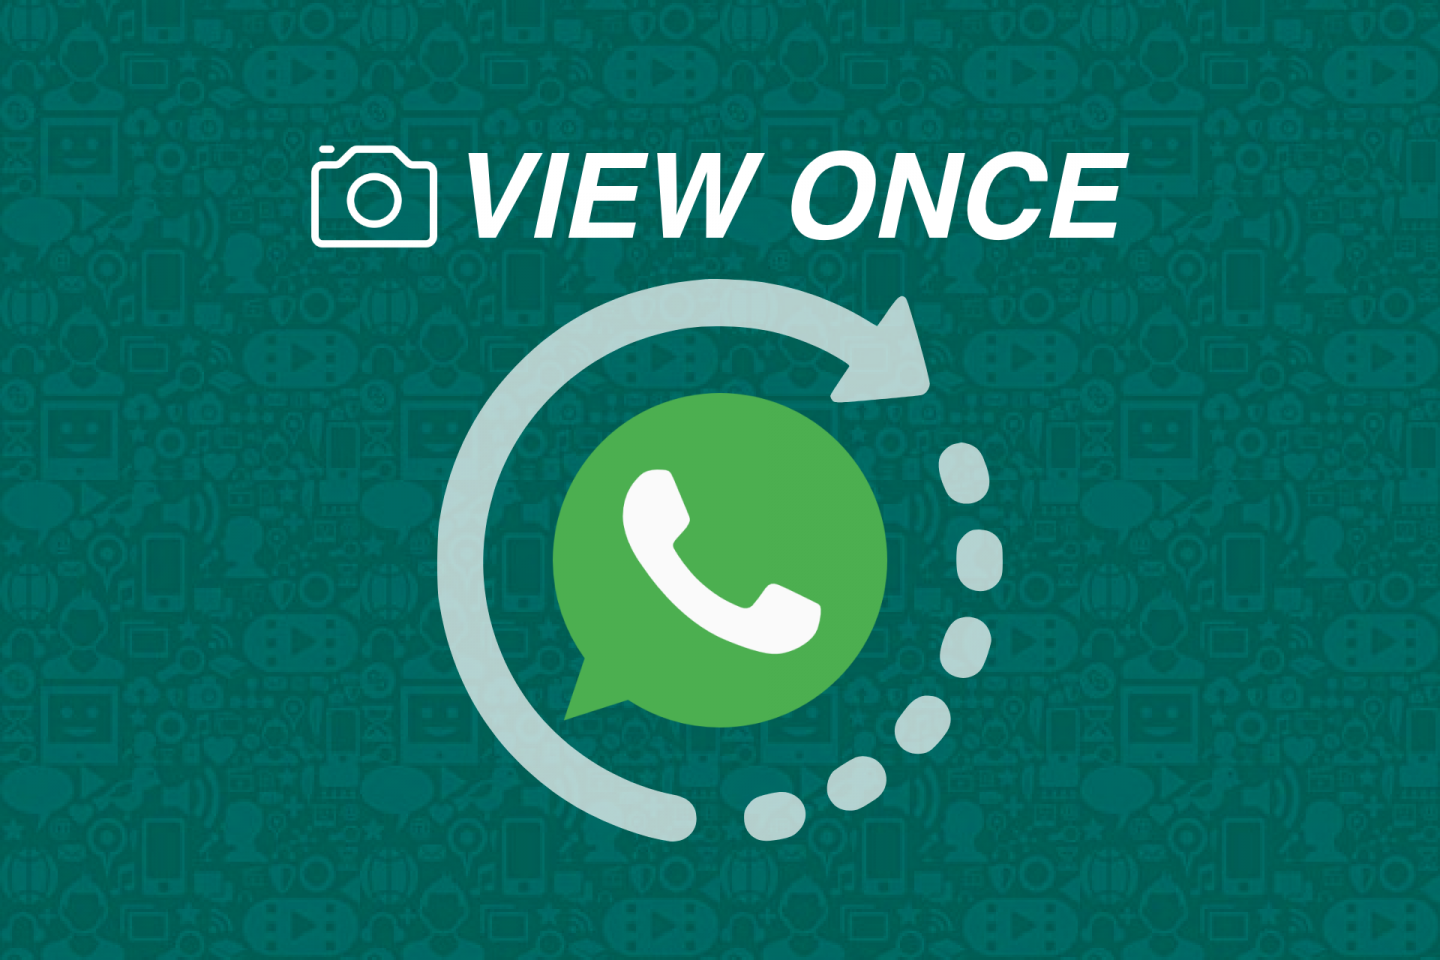 WhatsApp - View Once - Disappearing Feature